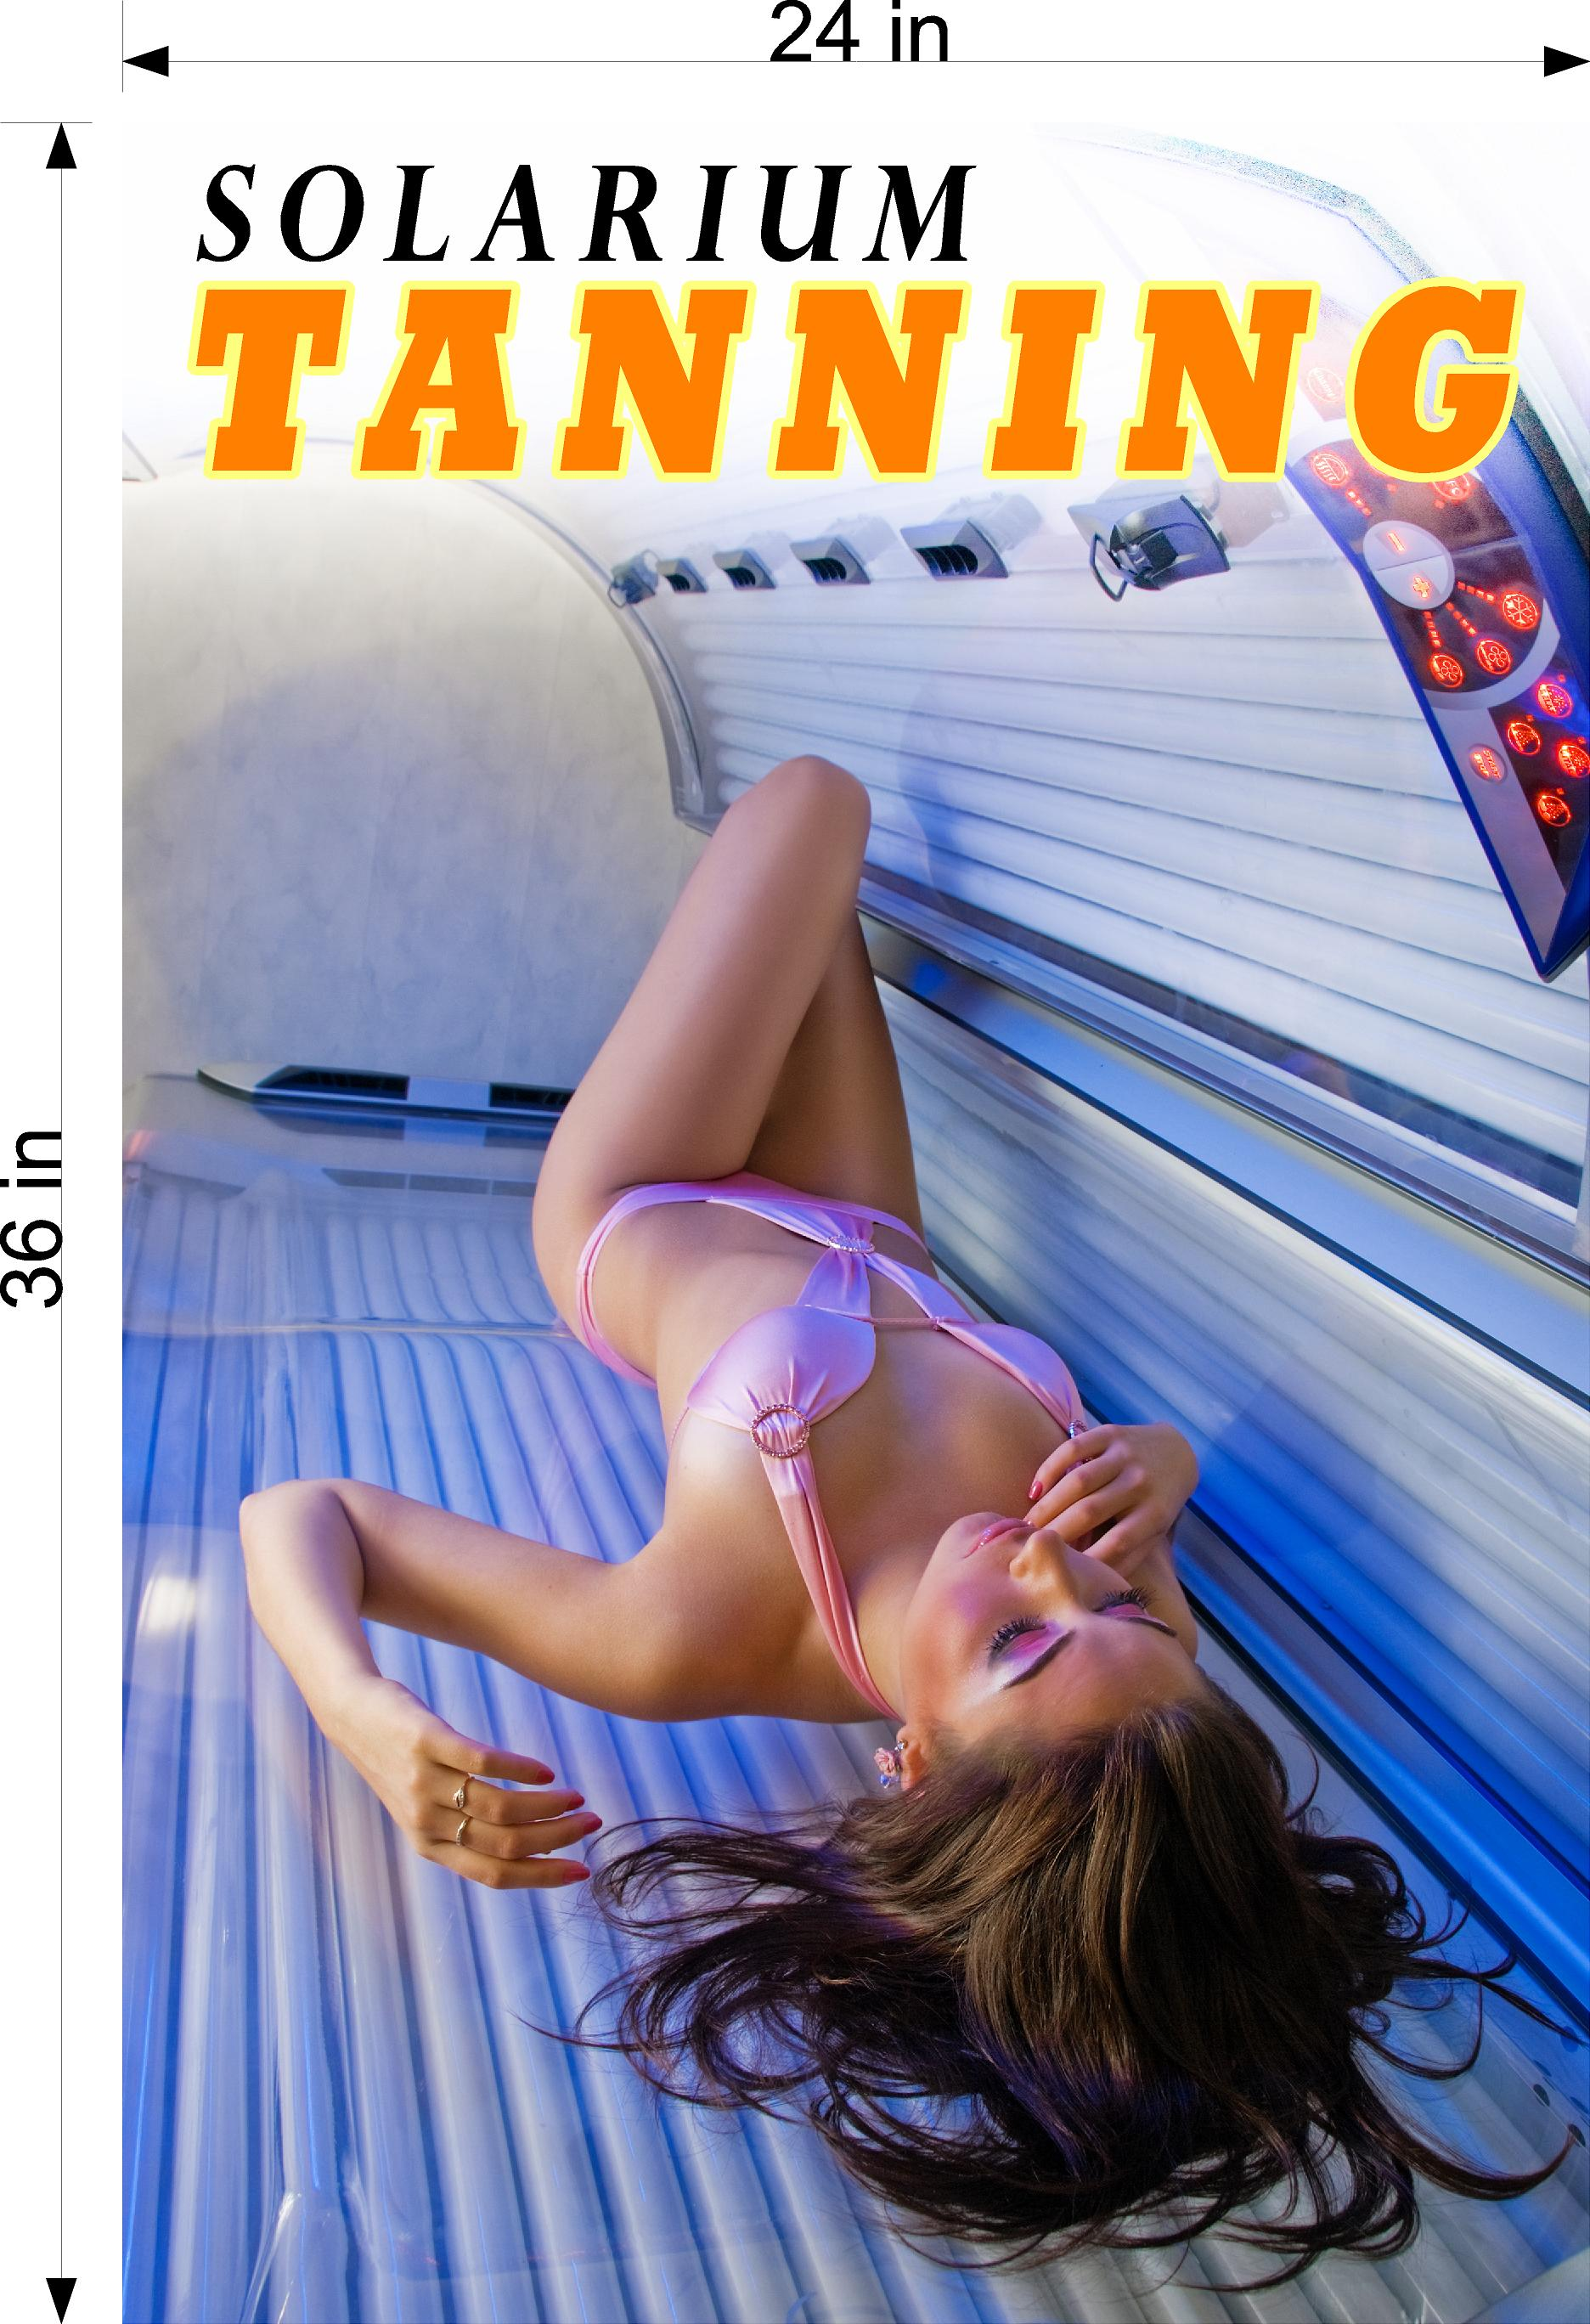 Tanning 03 Photo-Realistic Paper Poster Premium Matte Interior Inside Sign Wall Window Non-Laminated Vertical